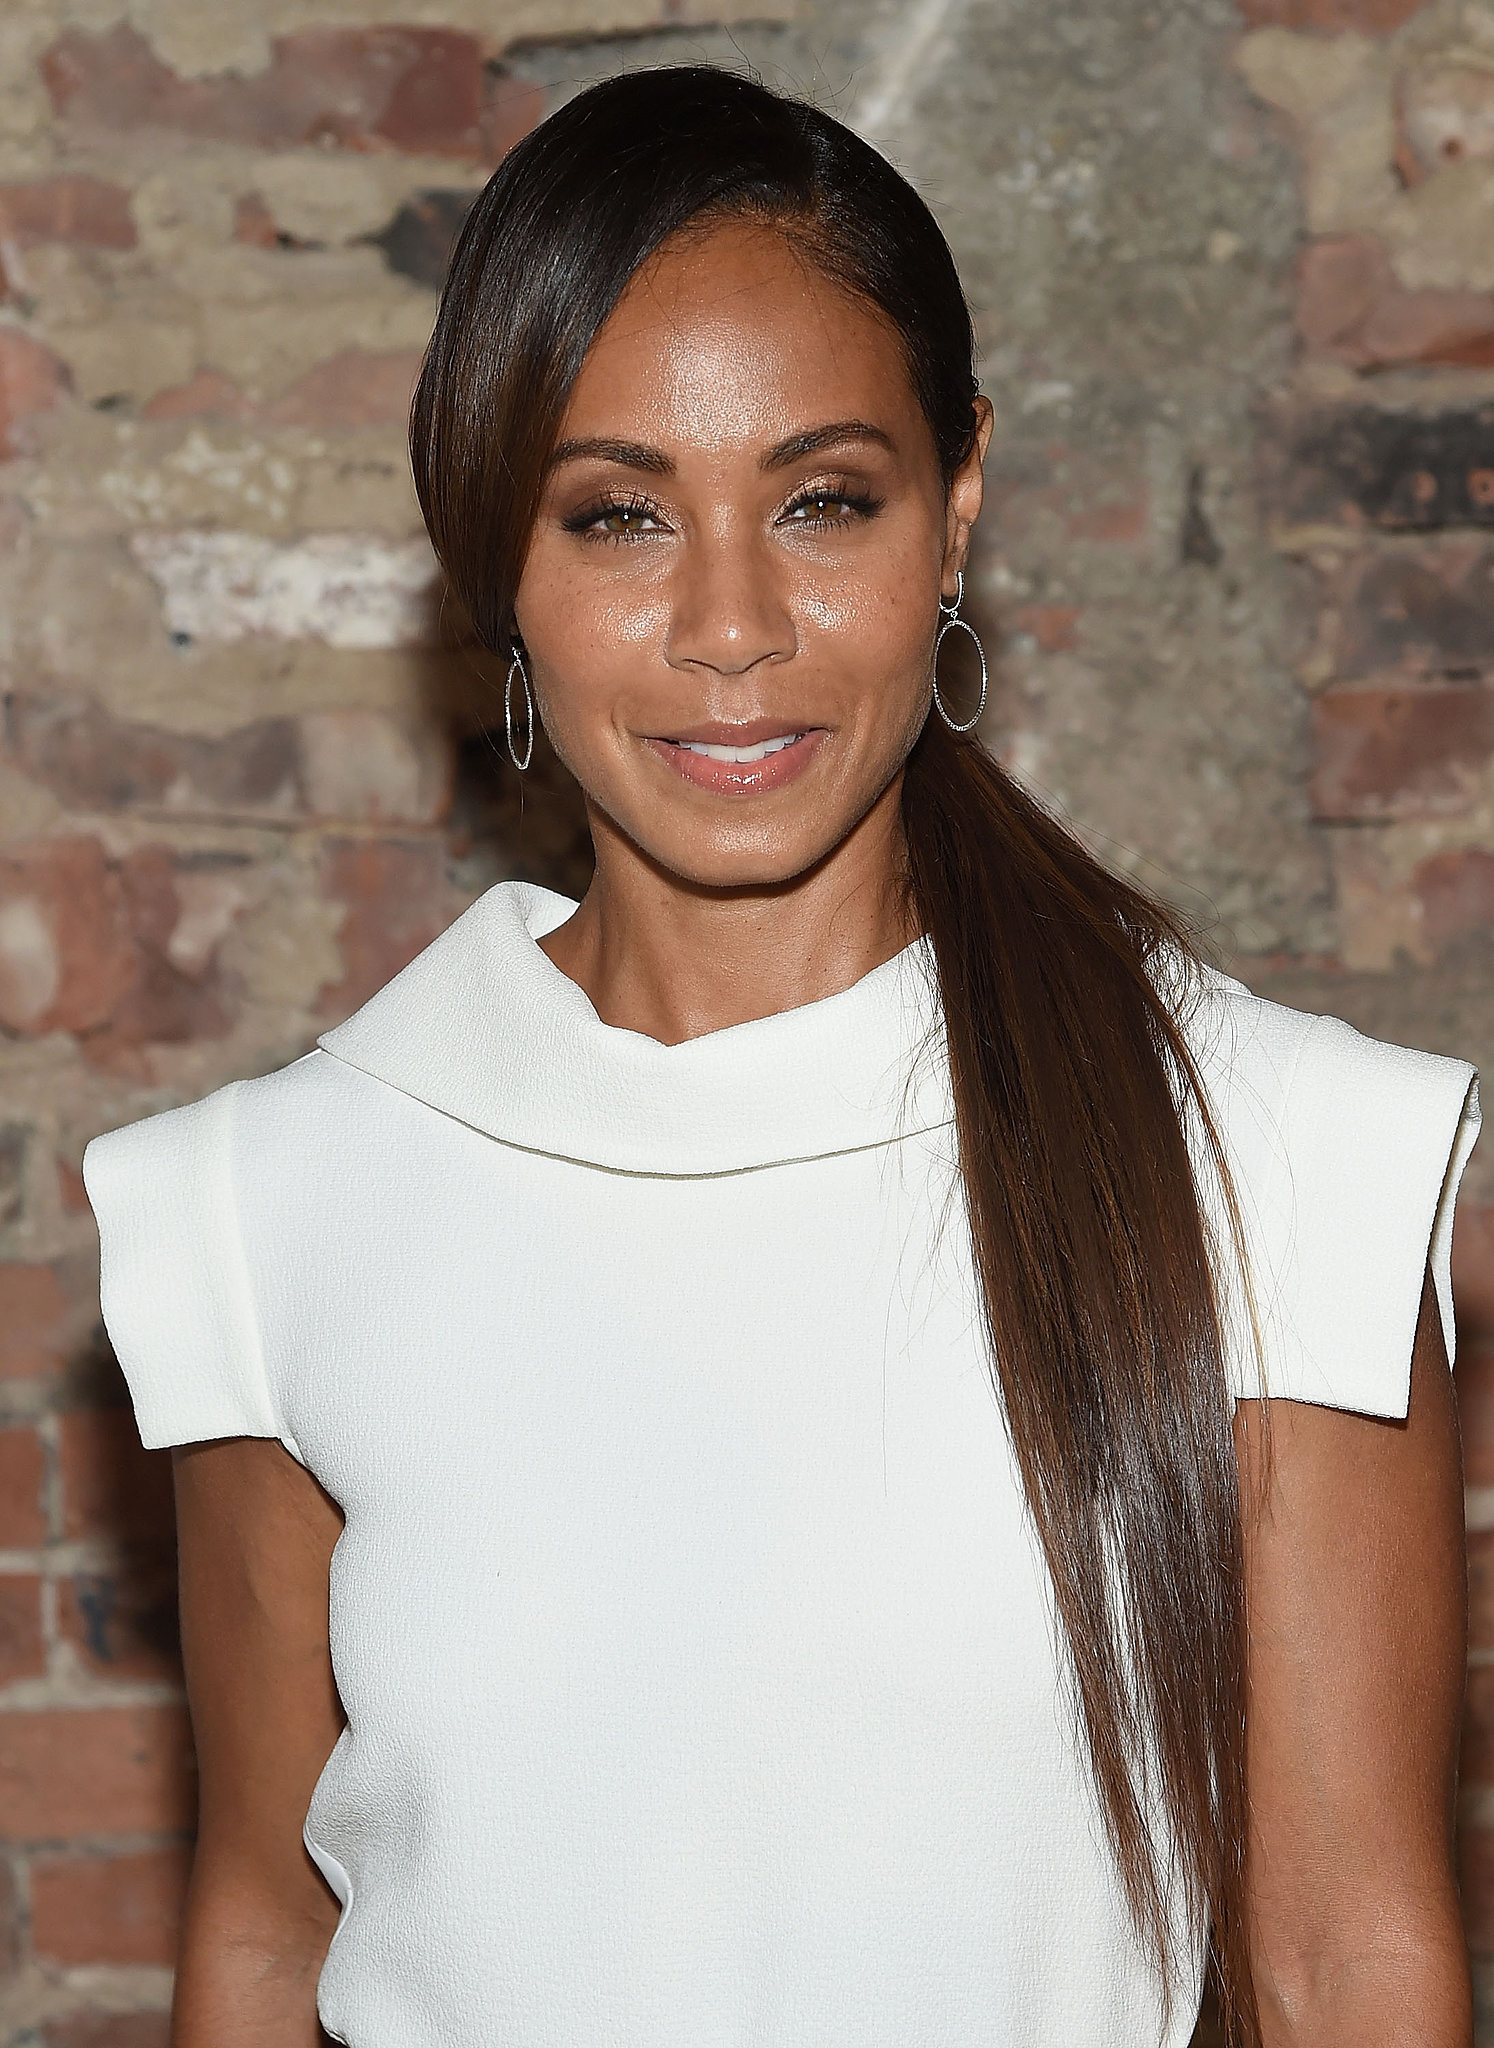 Jada Pinkett Smith Model Jada Pinkett Smith at